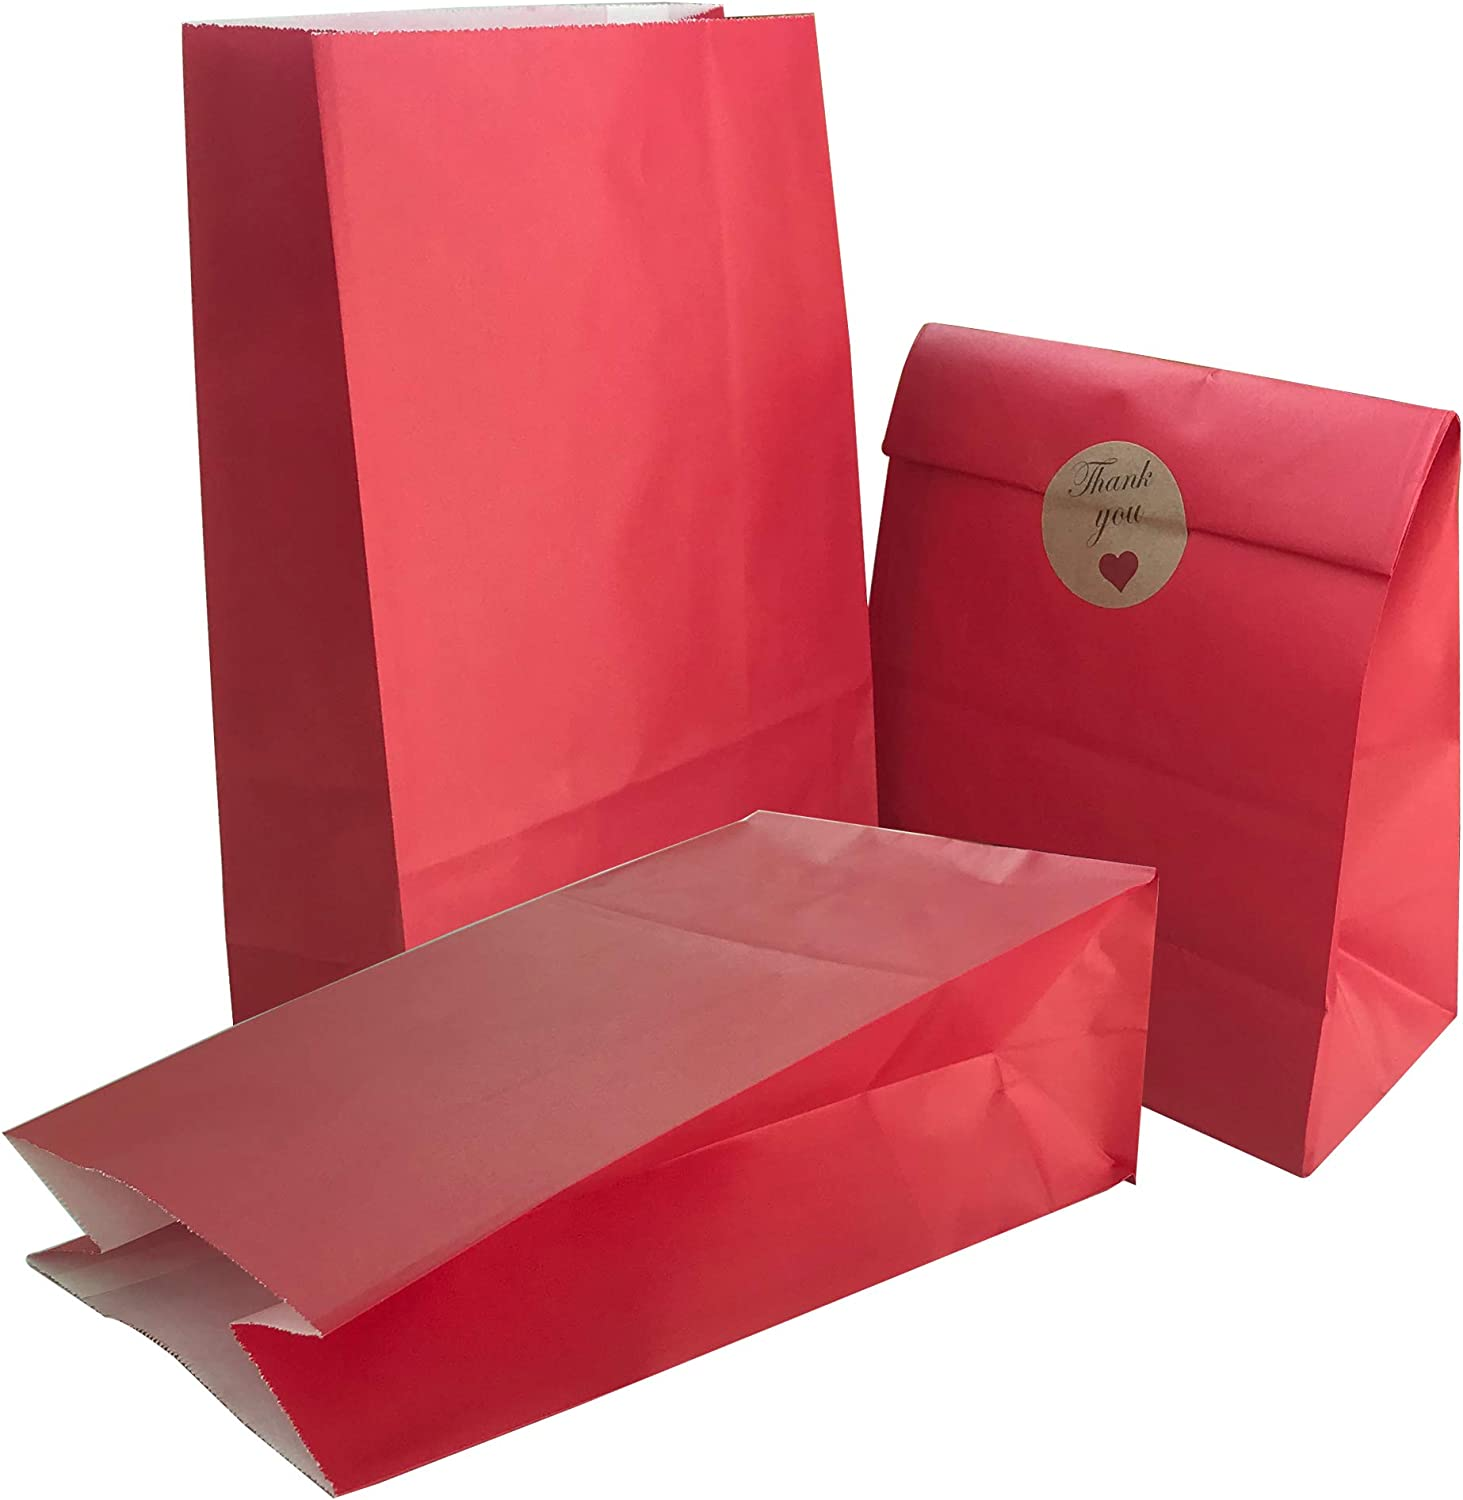 Party Bag 50 pcs Food Safe Kraft Paper and Ink, Natural (Biodegradable), Vivid Colored Candy Cookie Buffet Bags, Bottom Square Bag.Red.with 48 pcs Thank You Stickers 1.5 inch.